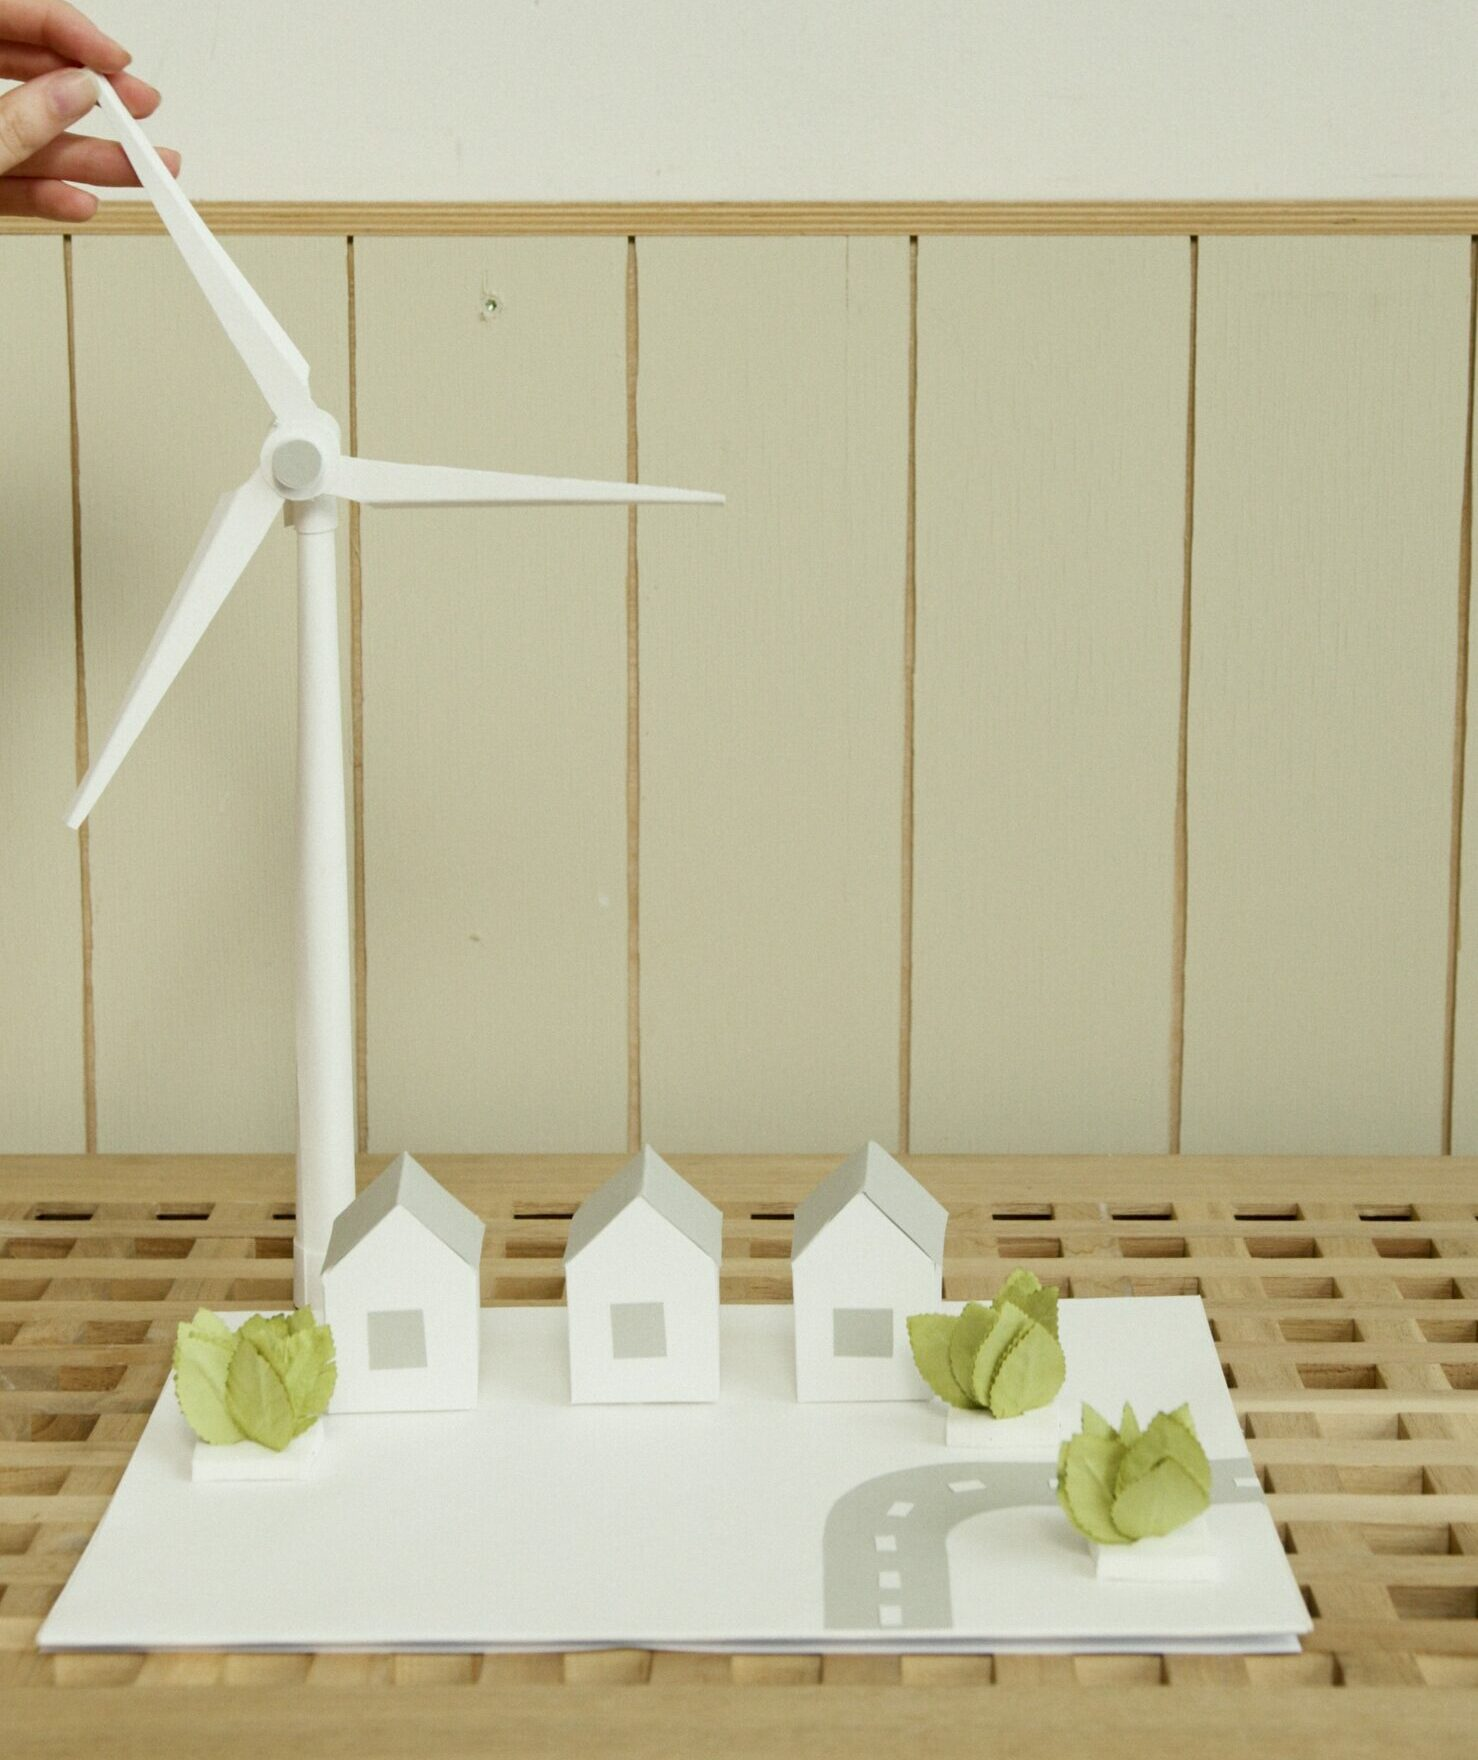 A paper model of several homes with a windmill.